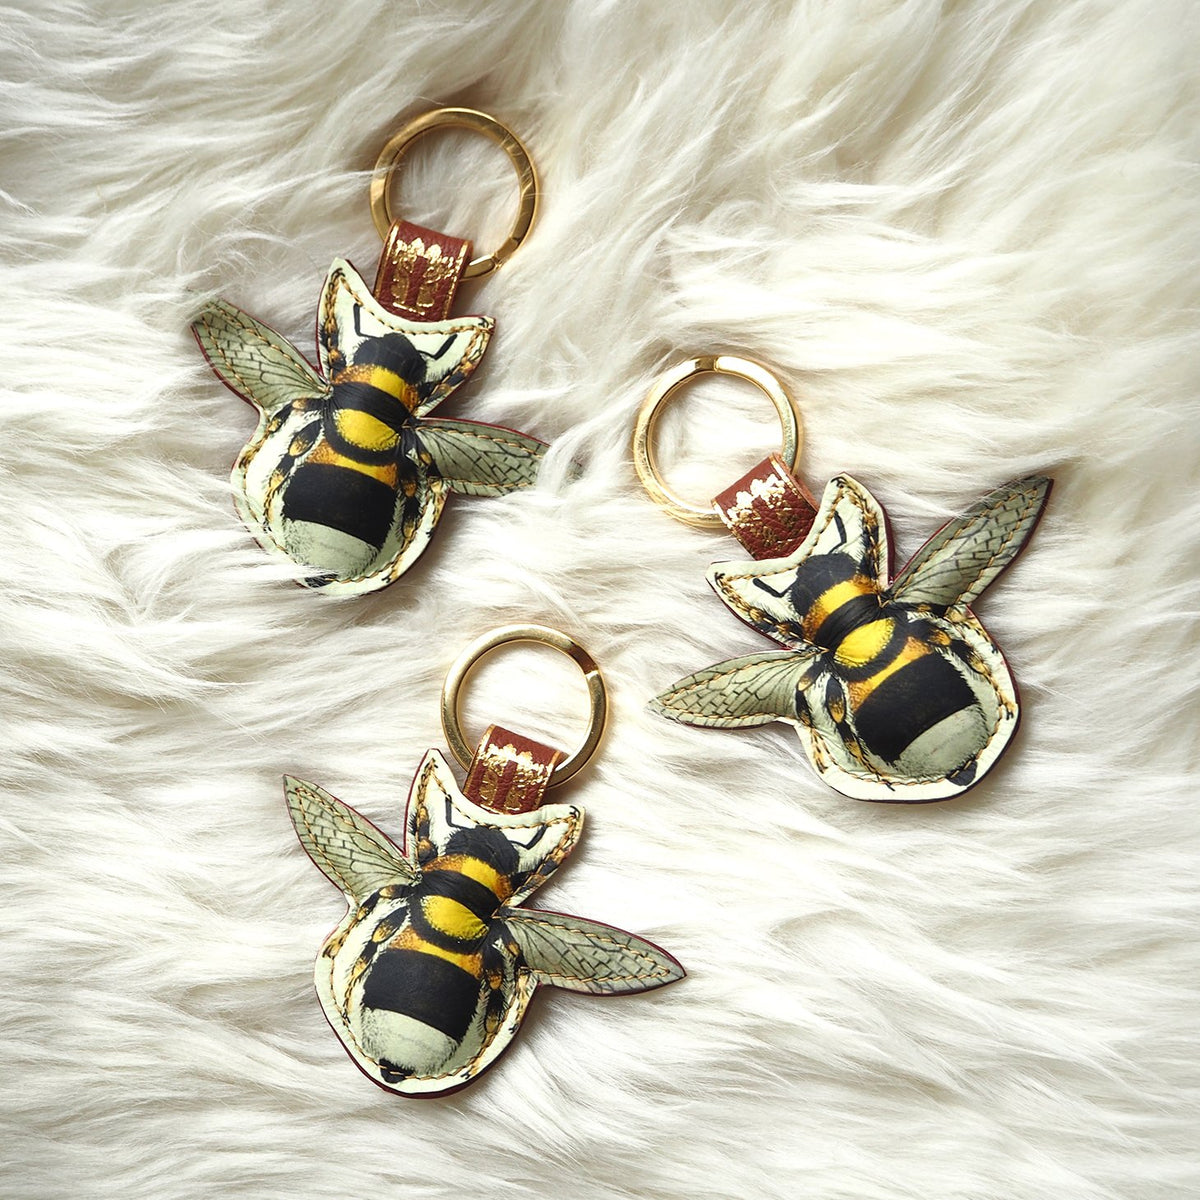 Leather Key Ring / Bag Charm - Bee Key Ring / Bag Charm Tovi Sorga